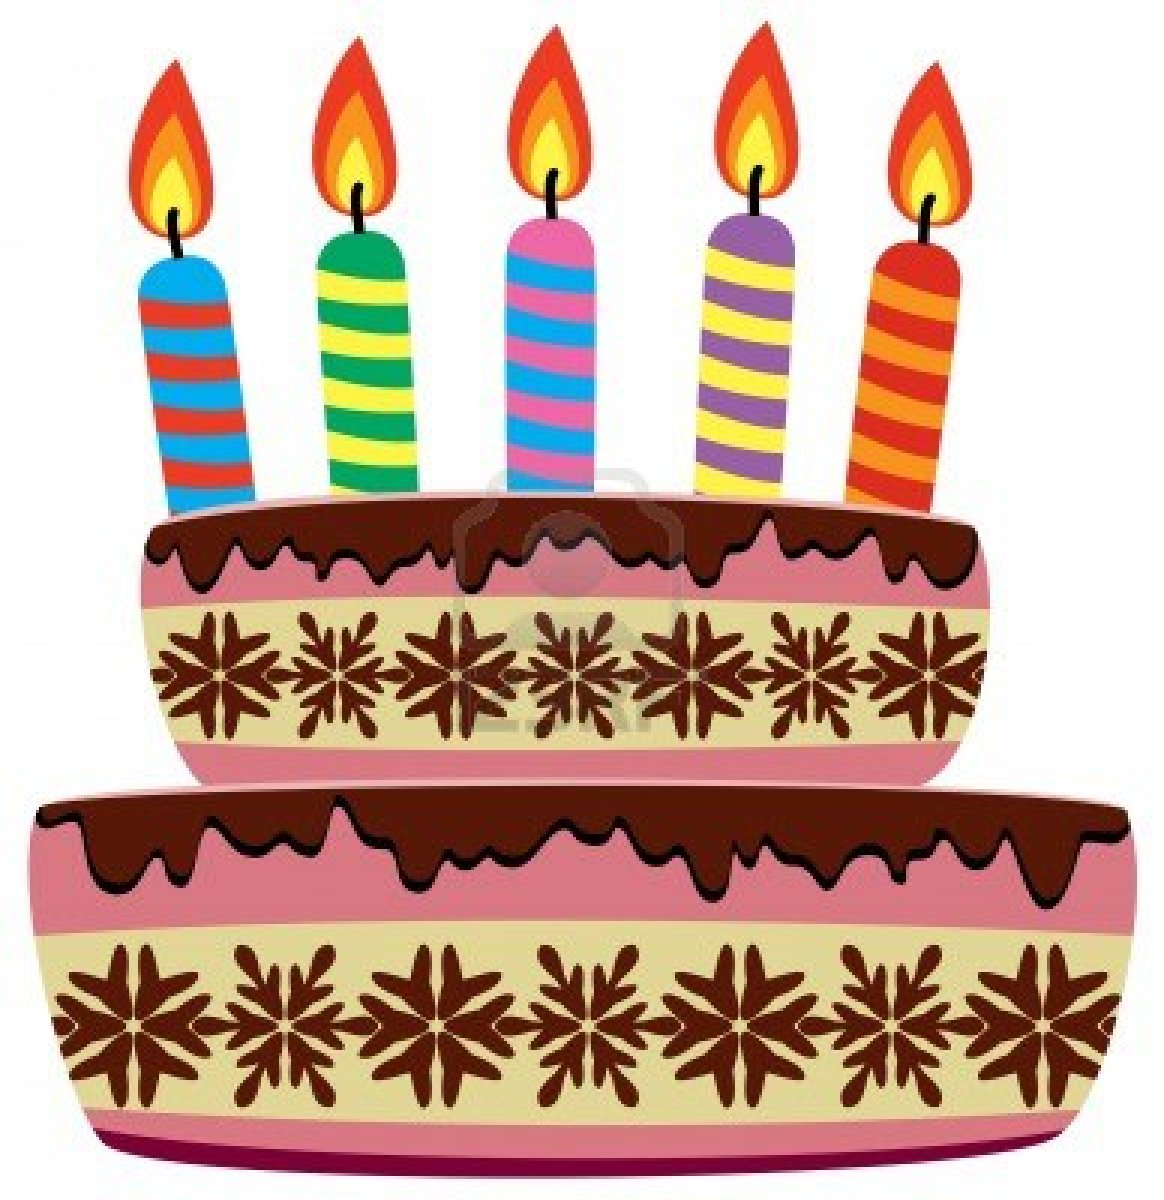 9206919 vector birthday cake with burning candles cakes by post monthly 6 on cakes by post monthly